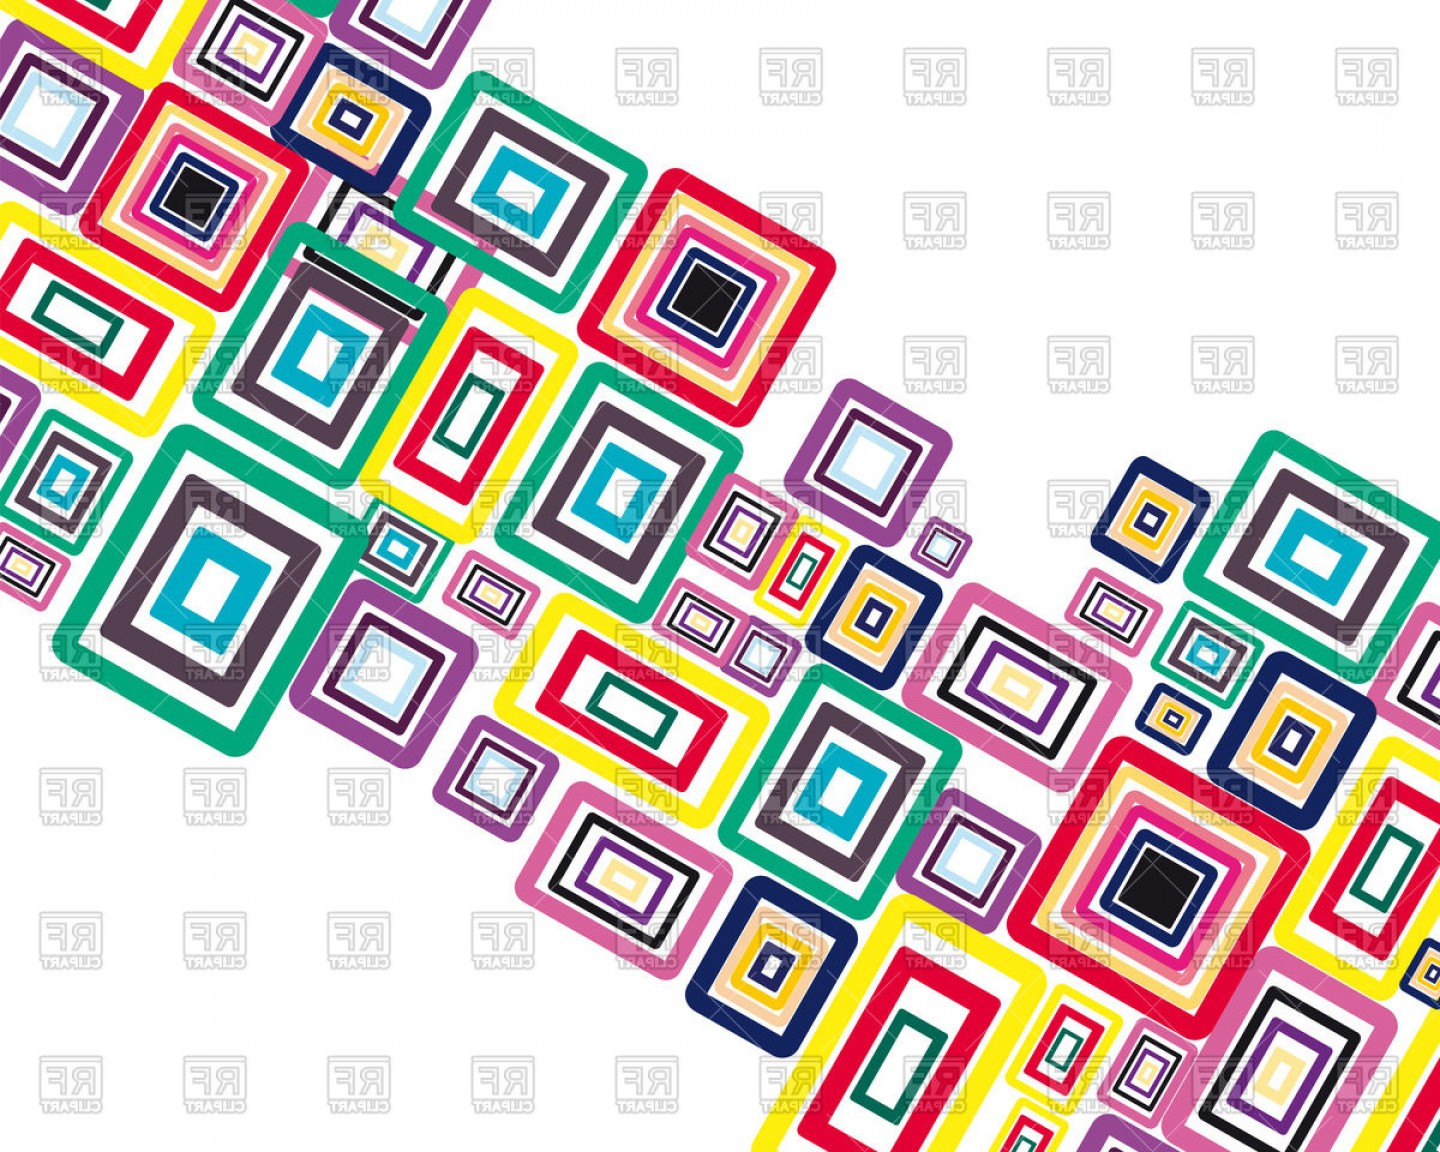 Geometric Vector B2: Abstract Colorful Squares Geometric Background Vector Clipart